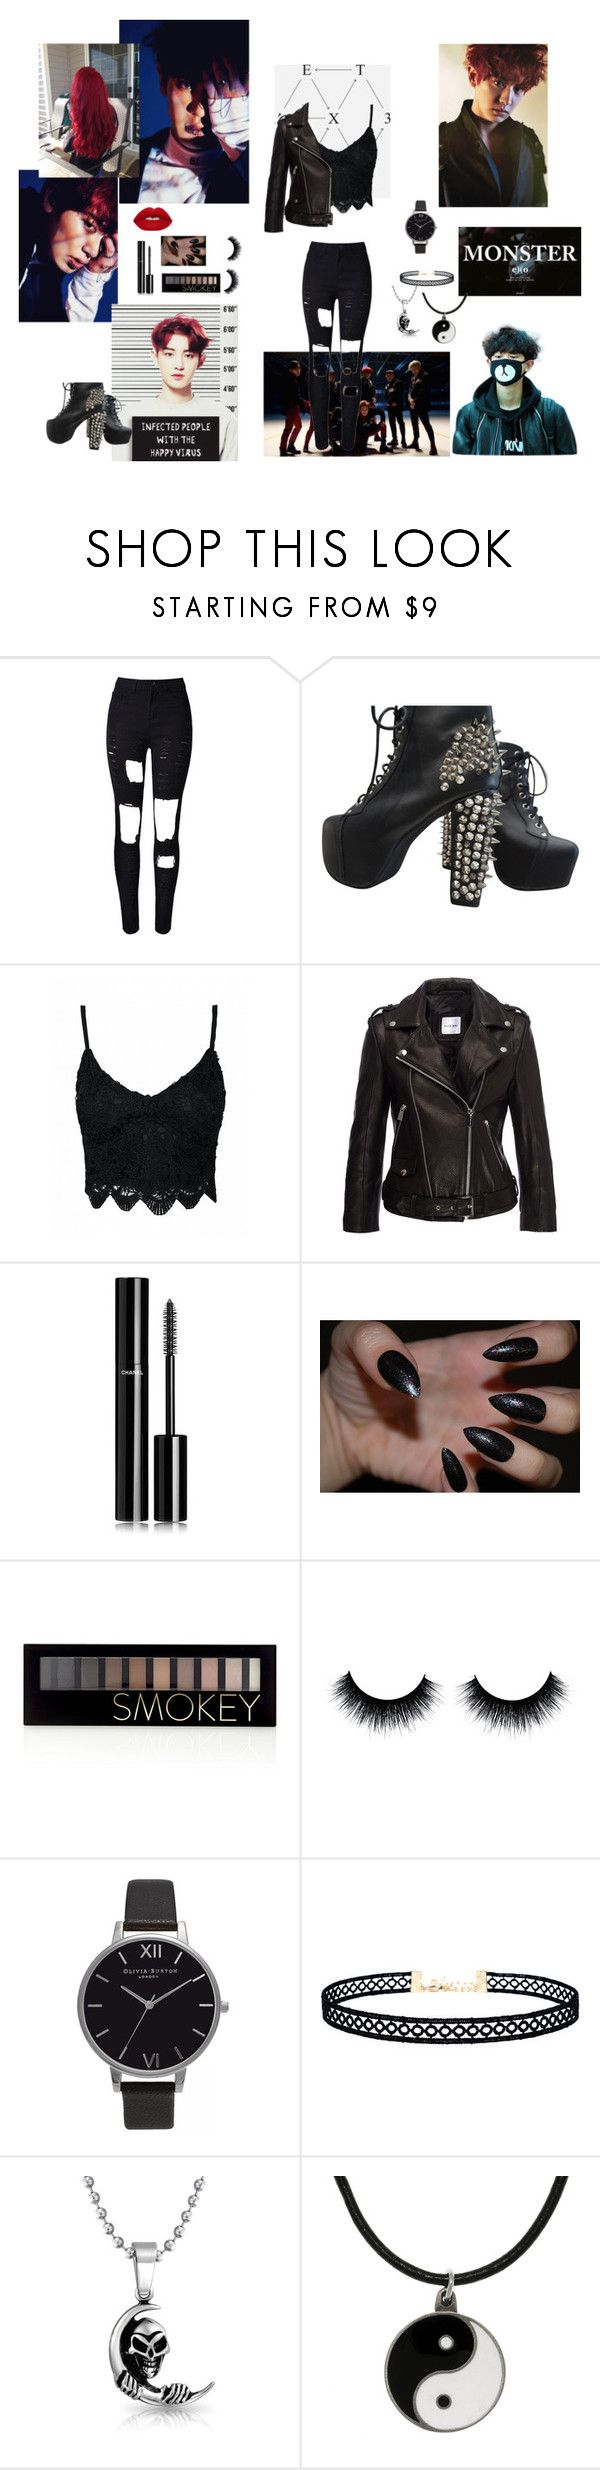 """""""Exo- Chanyeol (monster)"""" by melissa-piv ❤ liked on Polyvore featuring WithChic, Jeffrey Campbell, Anine Bing, Chanel, Forever 21, Olivia Burton, LULUS, Bling Jewelry, Carolina Glamour Collection and Lime Crime"""